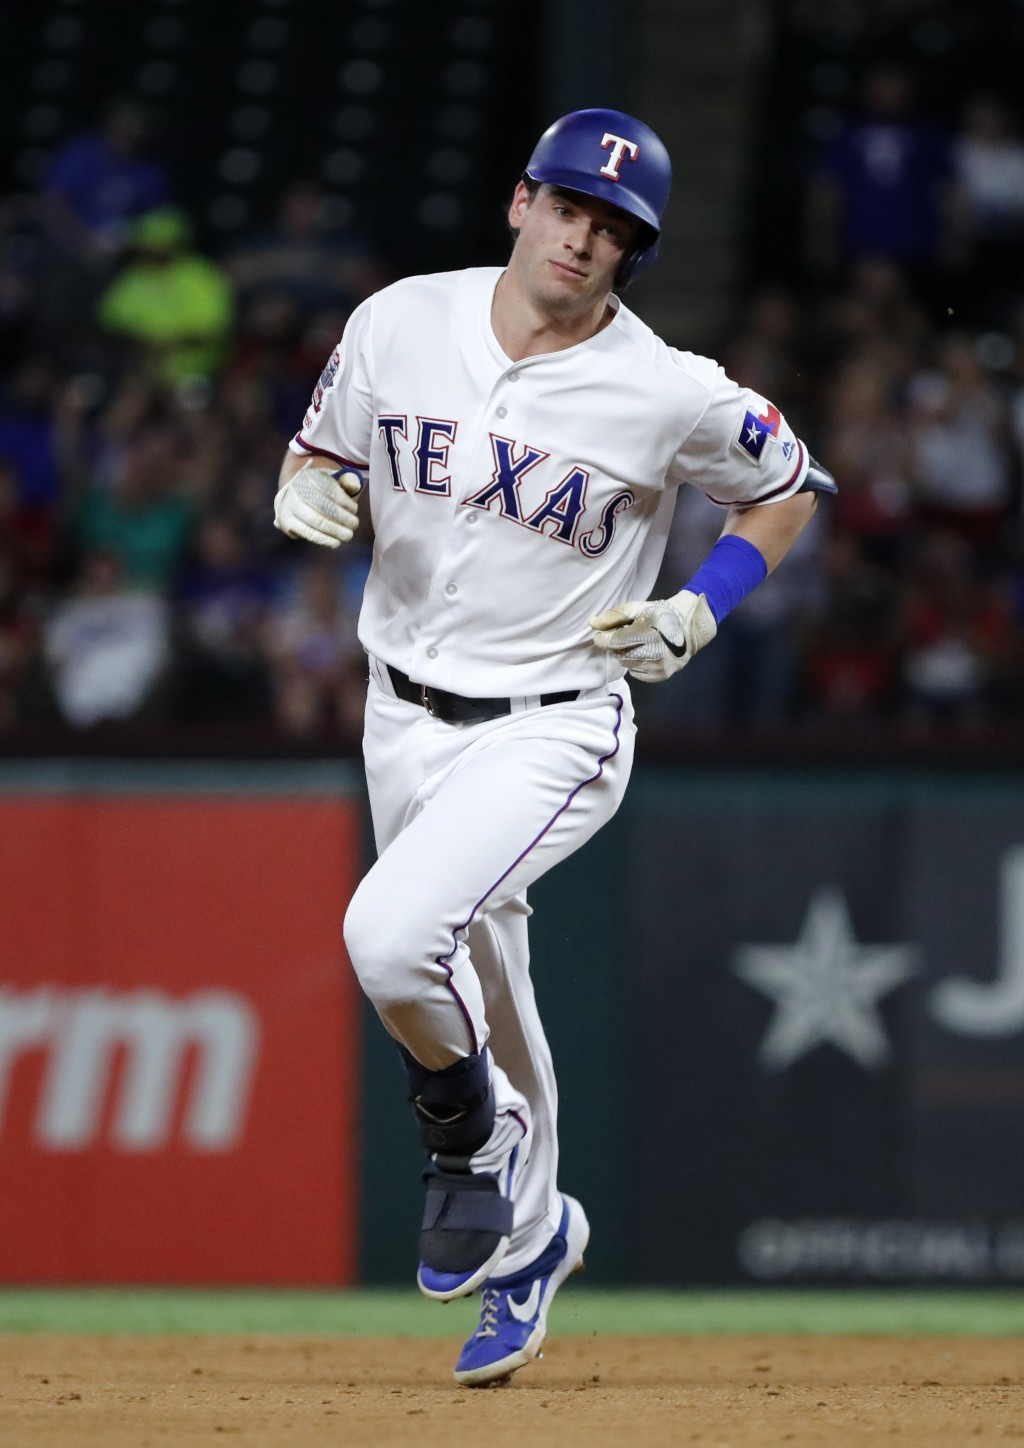 Texas Rangers' Nick Solak runs the bases after hitting a two-run home run against the Tampa Bay Rays during the fourth inning of a baseball game in Ar...